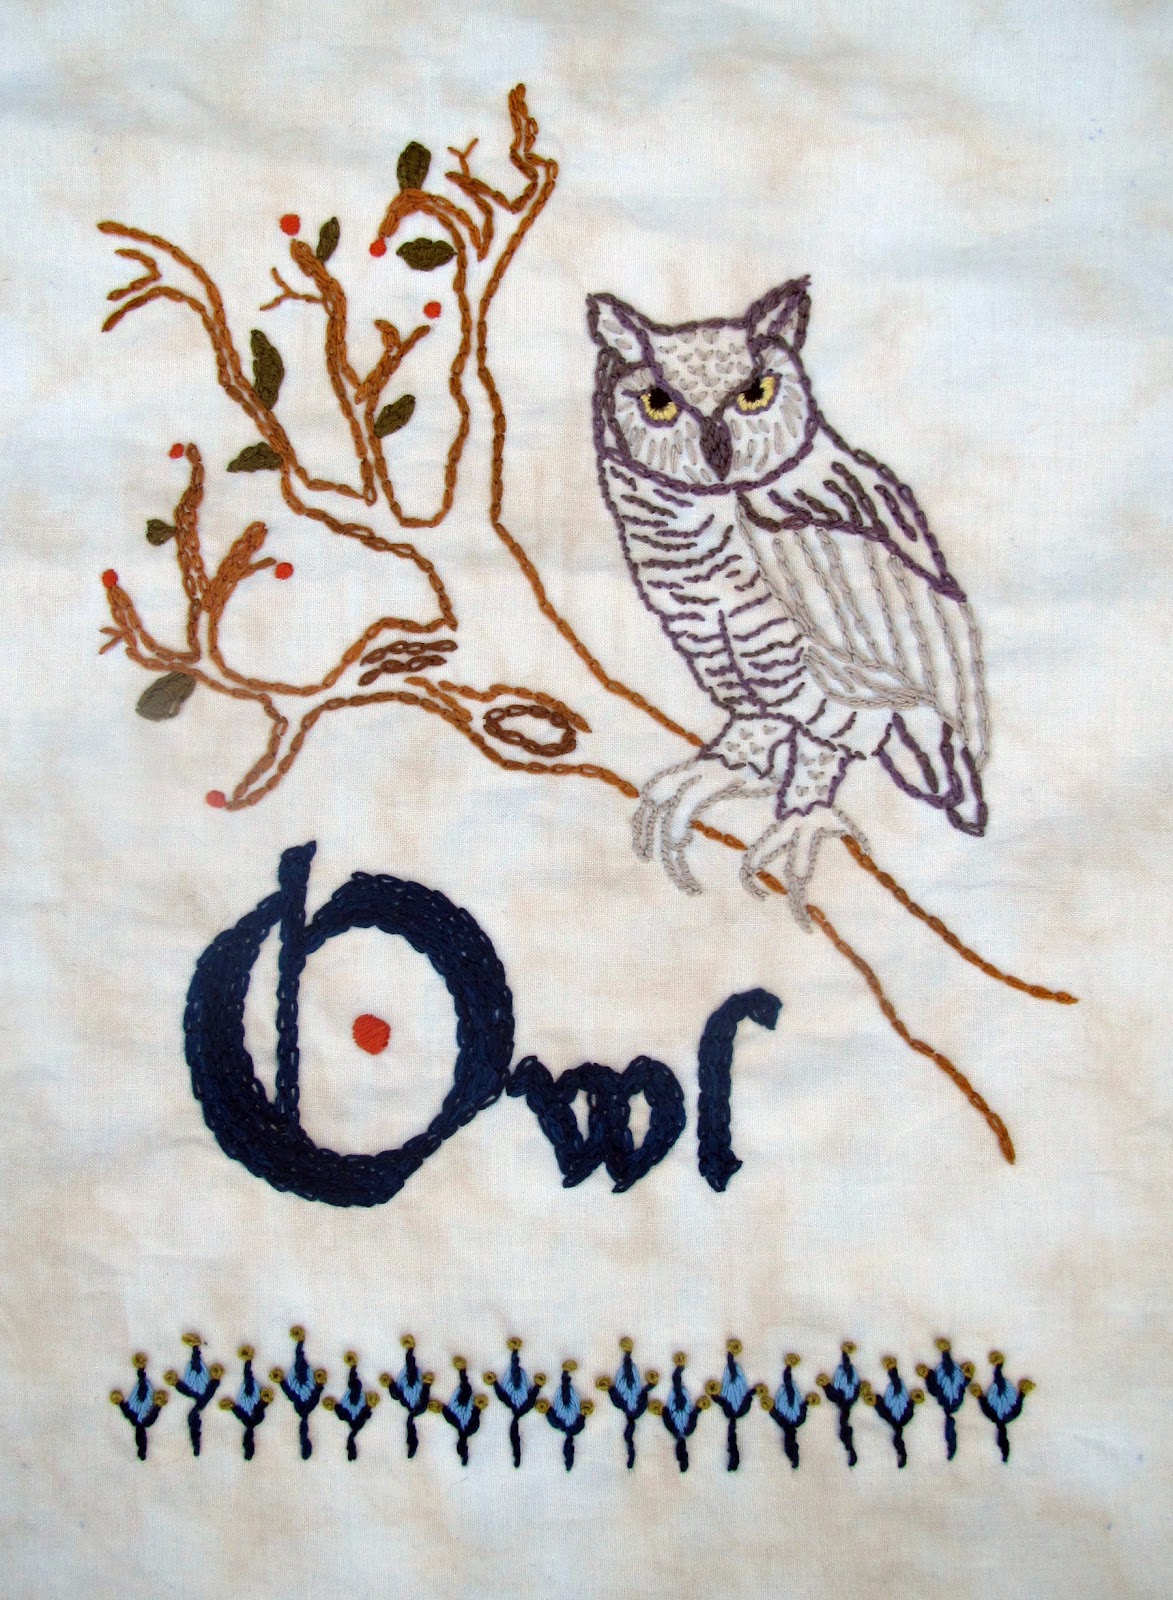 Mighty distractible august 2011 embroidery and cross stitch patterns we like to thank everyone for the warm reception to the first two patterns in the woodland series bankloansurffo Image collections